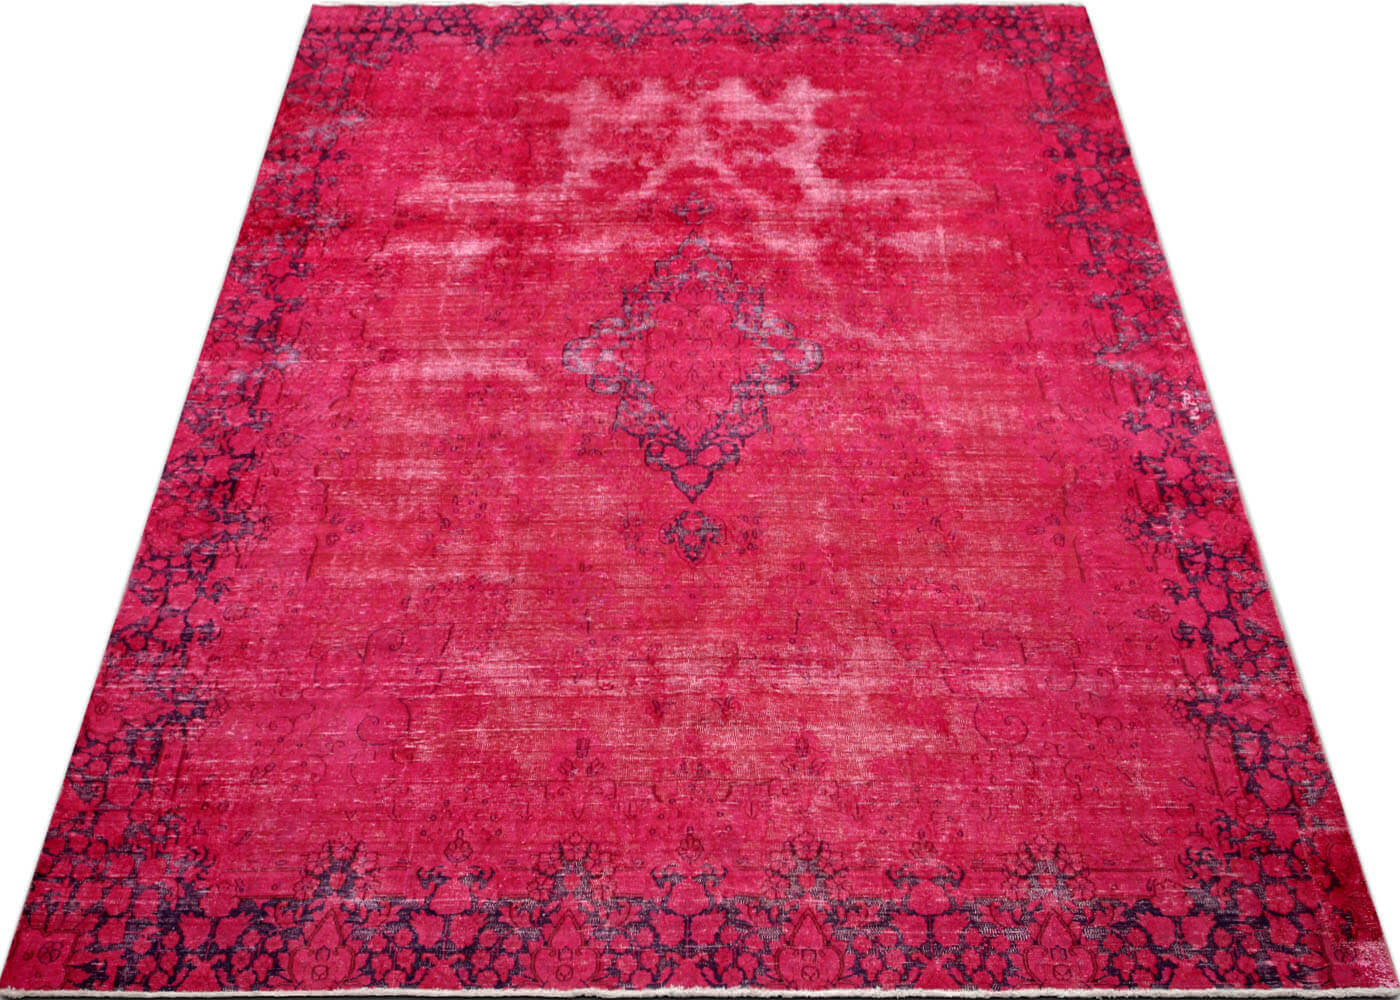 "Vintage Persian Kerman Overdyed Carpet - 8'8"" x 11'10"""